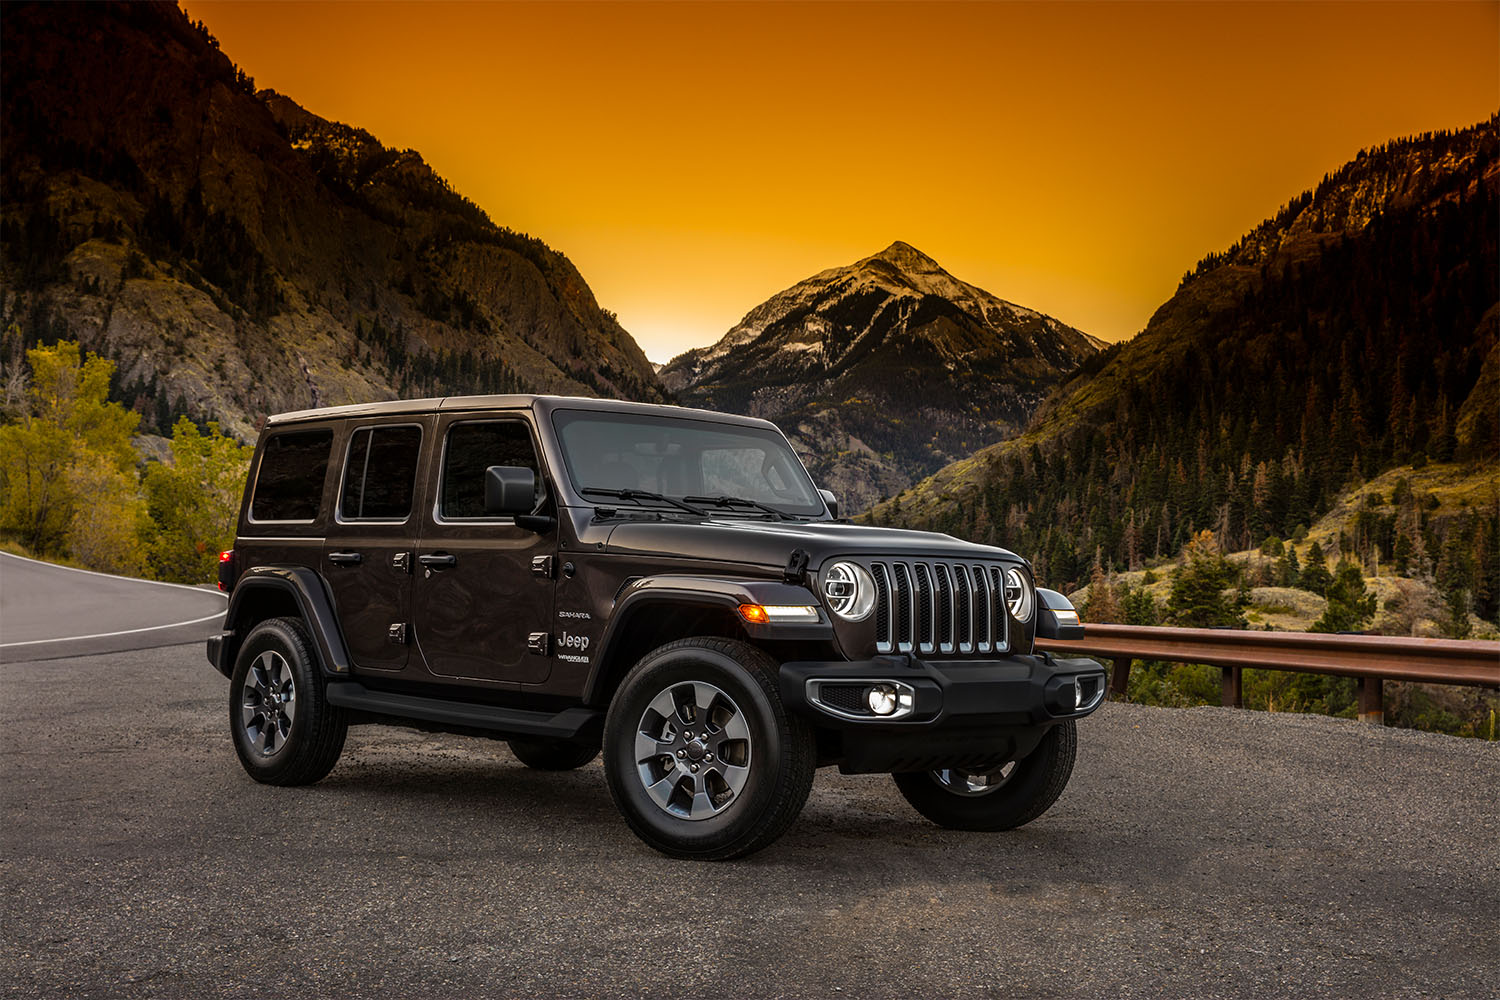 Jeep Wranglers available in Nampa, ID at Peterson Dodge Chrysler Jeep Ram